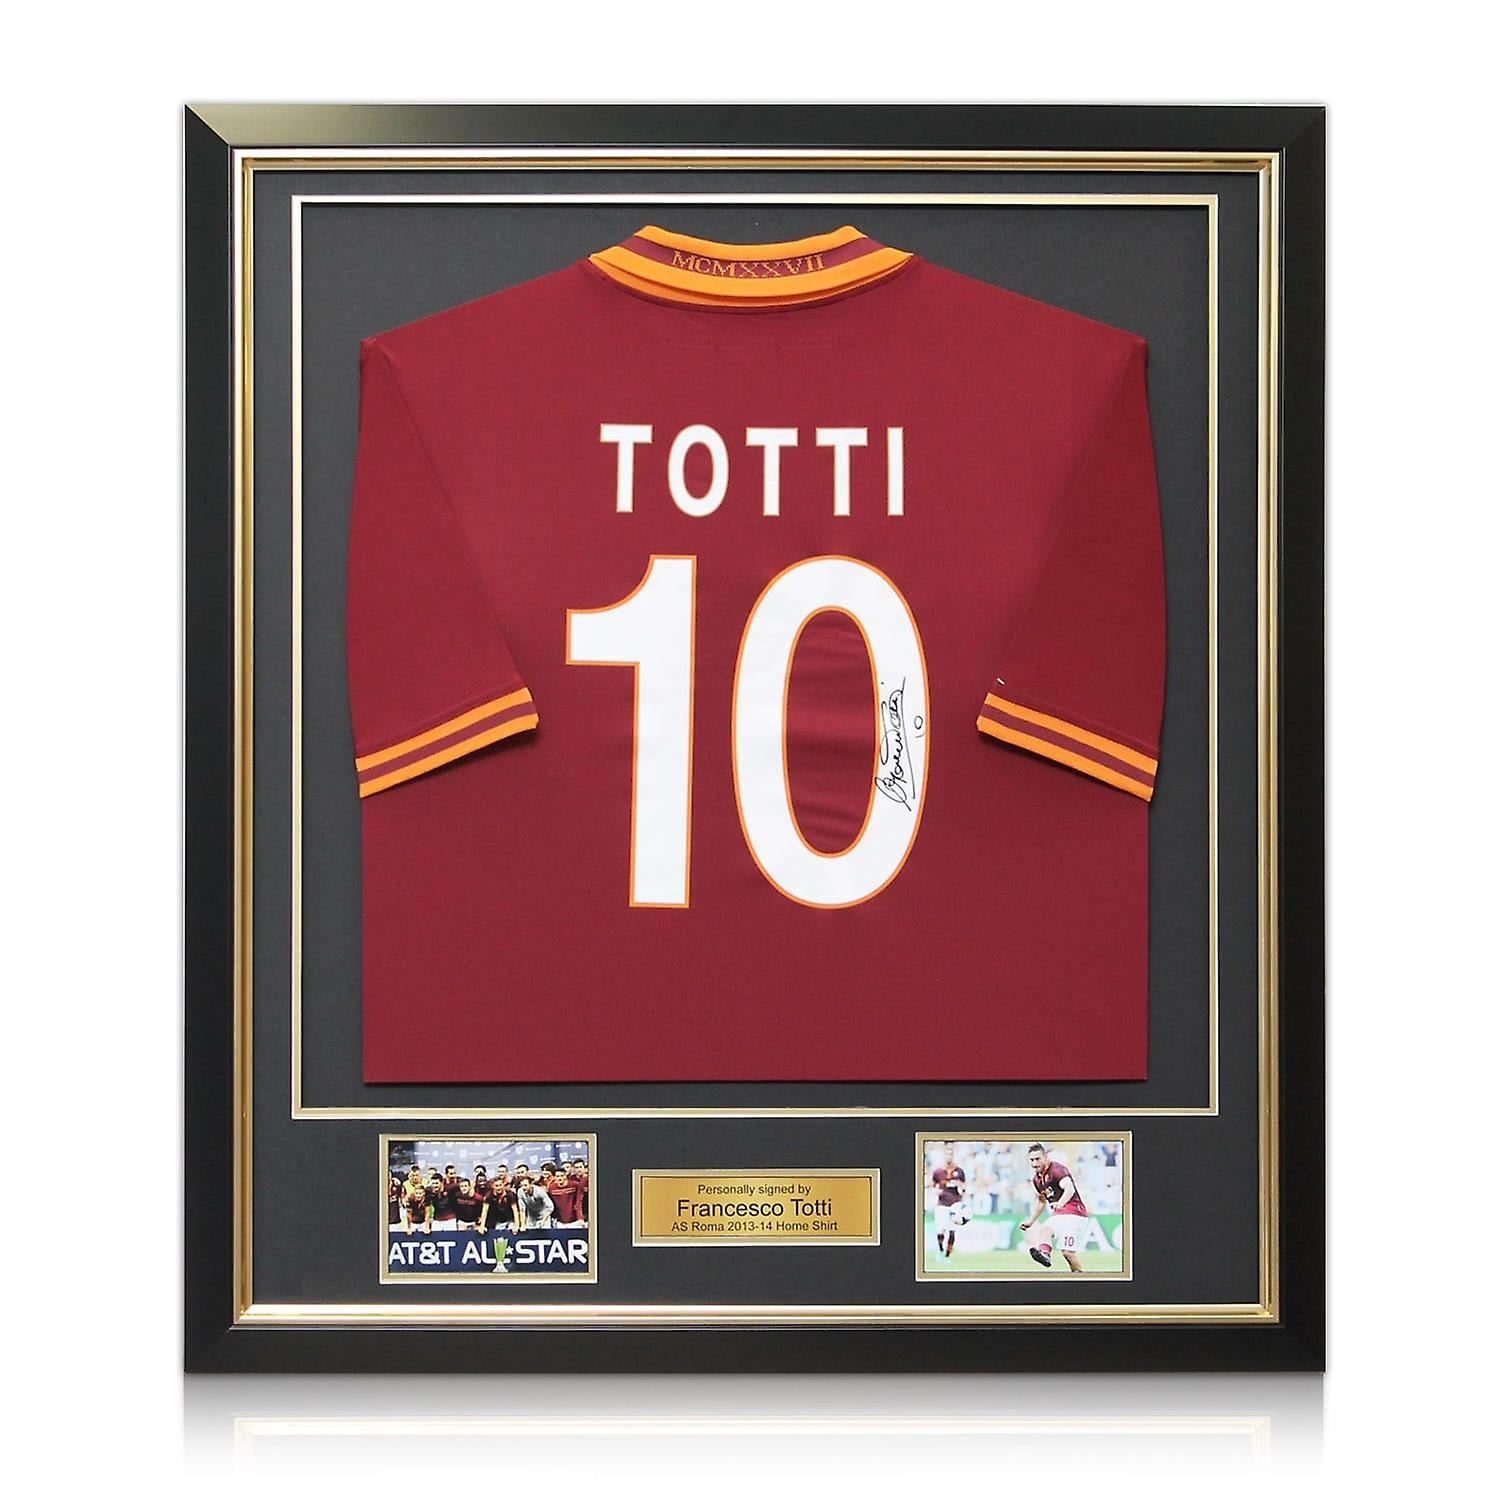 Francesco Totti Signed AS Roma Football Shirt 2013-14. In Deluxe Frame